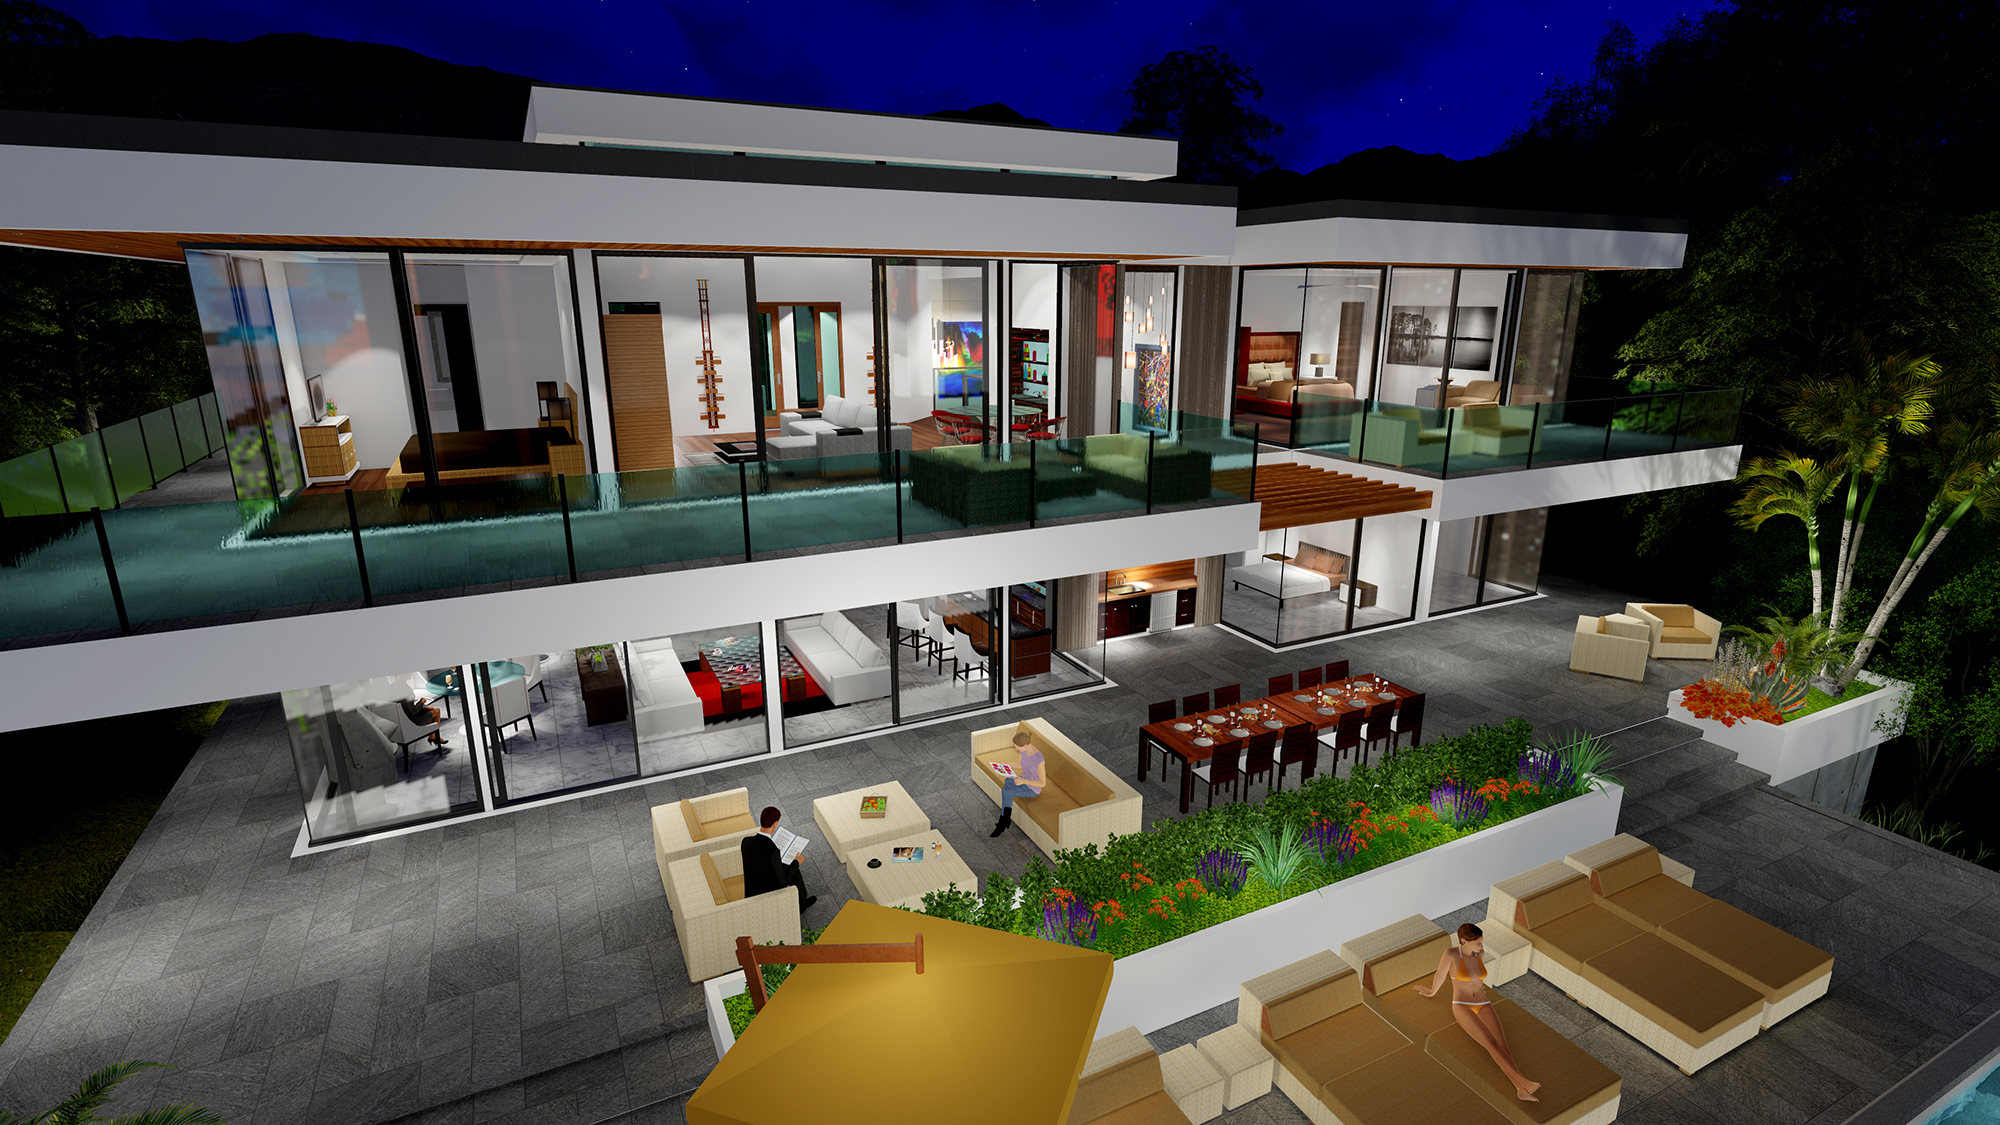 TWO STORY MODERN GLASS HOME DESIGN - Gallery - Next Gen ...